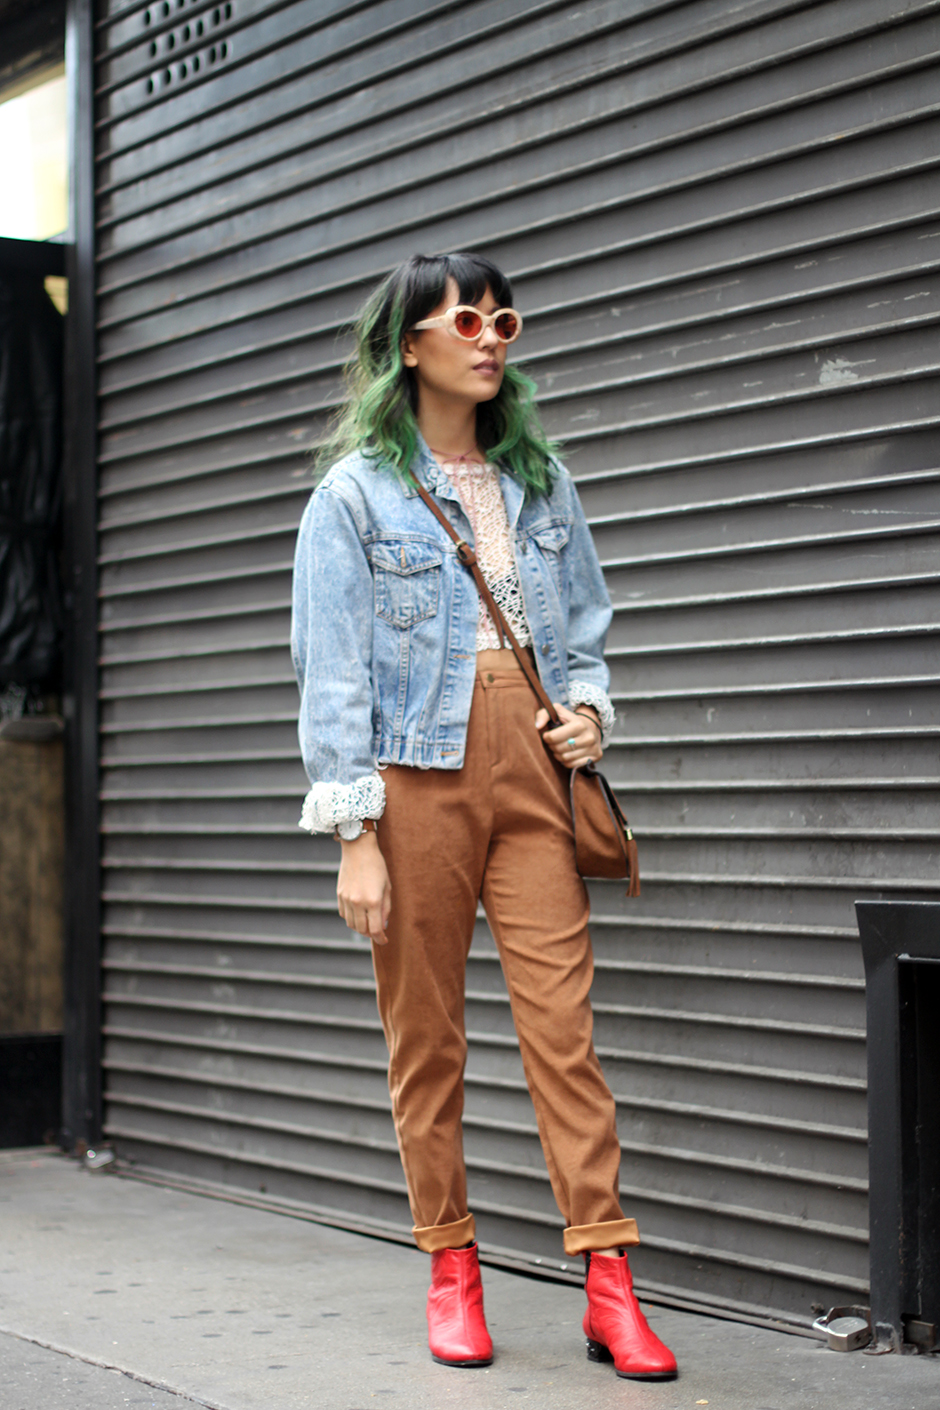 Denim jacket, brown high waist trouser pants, red boots, Acne Studios Mustang Pink sunglasses, green hair